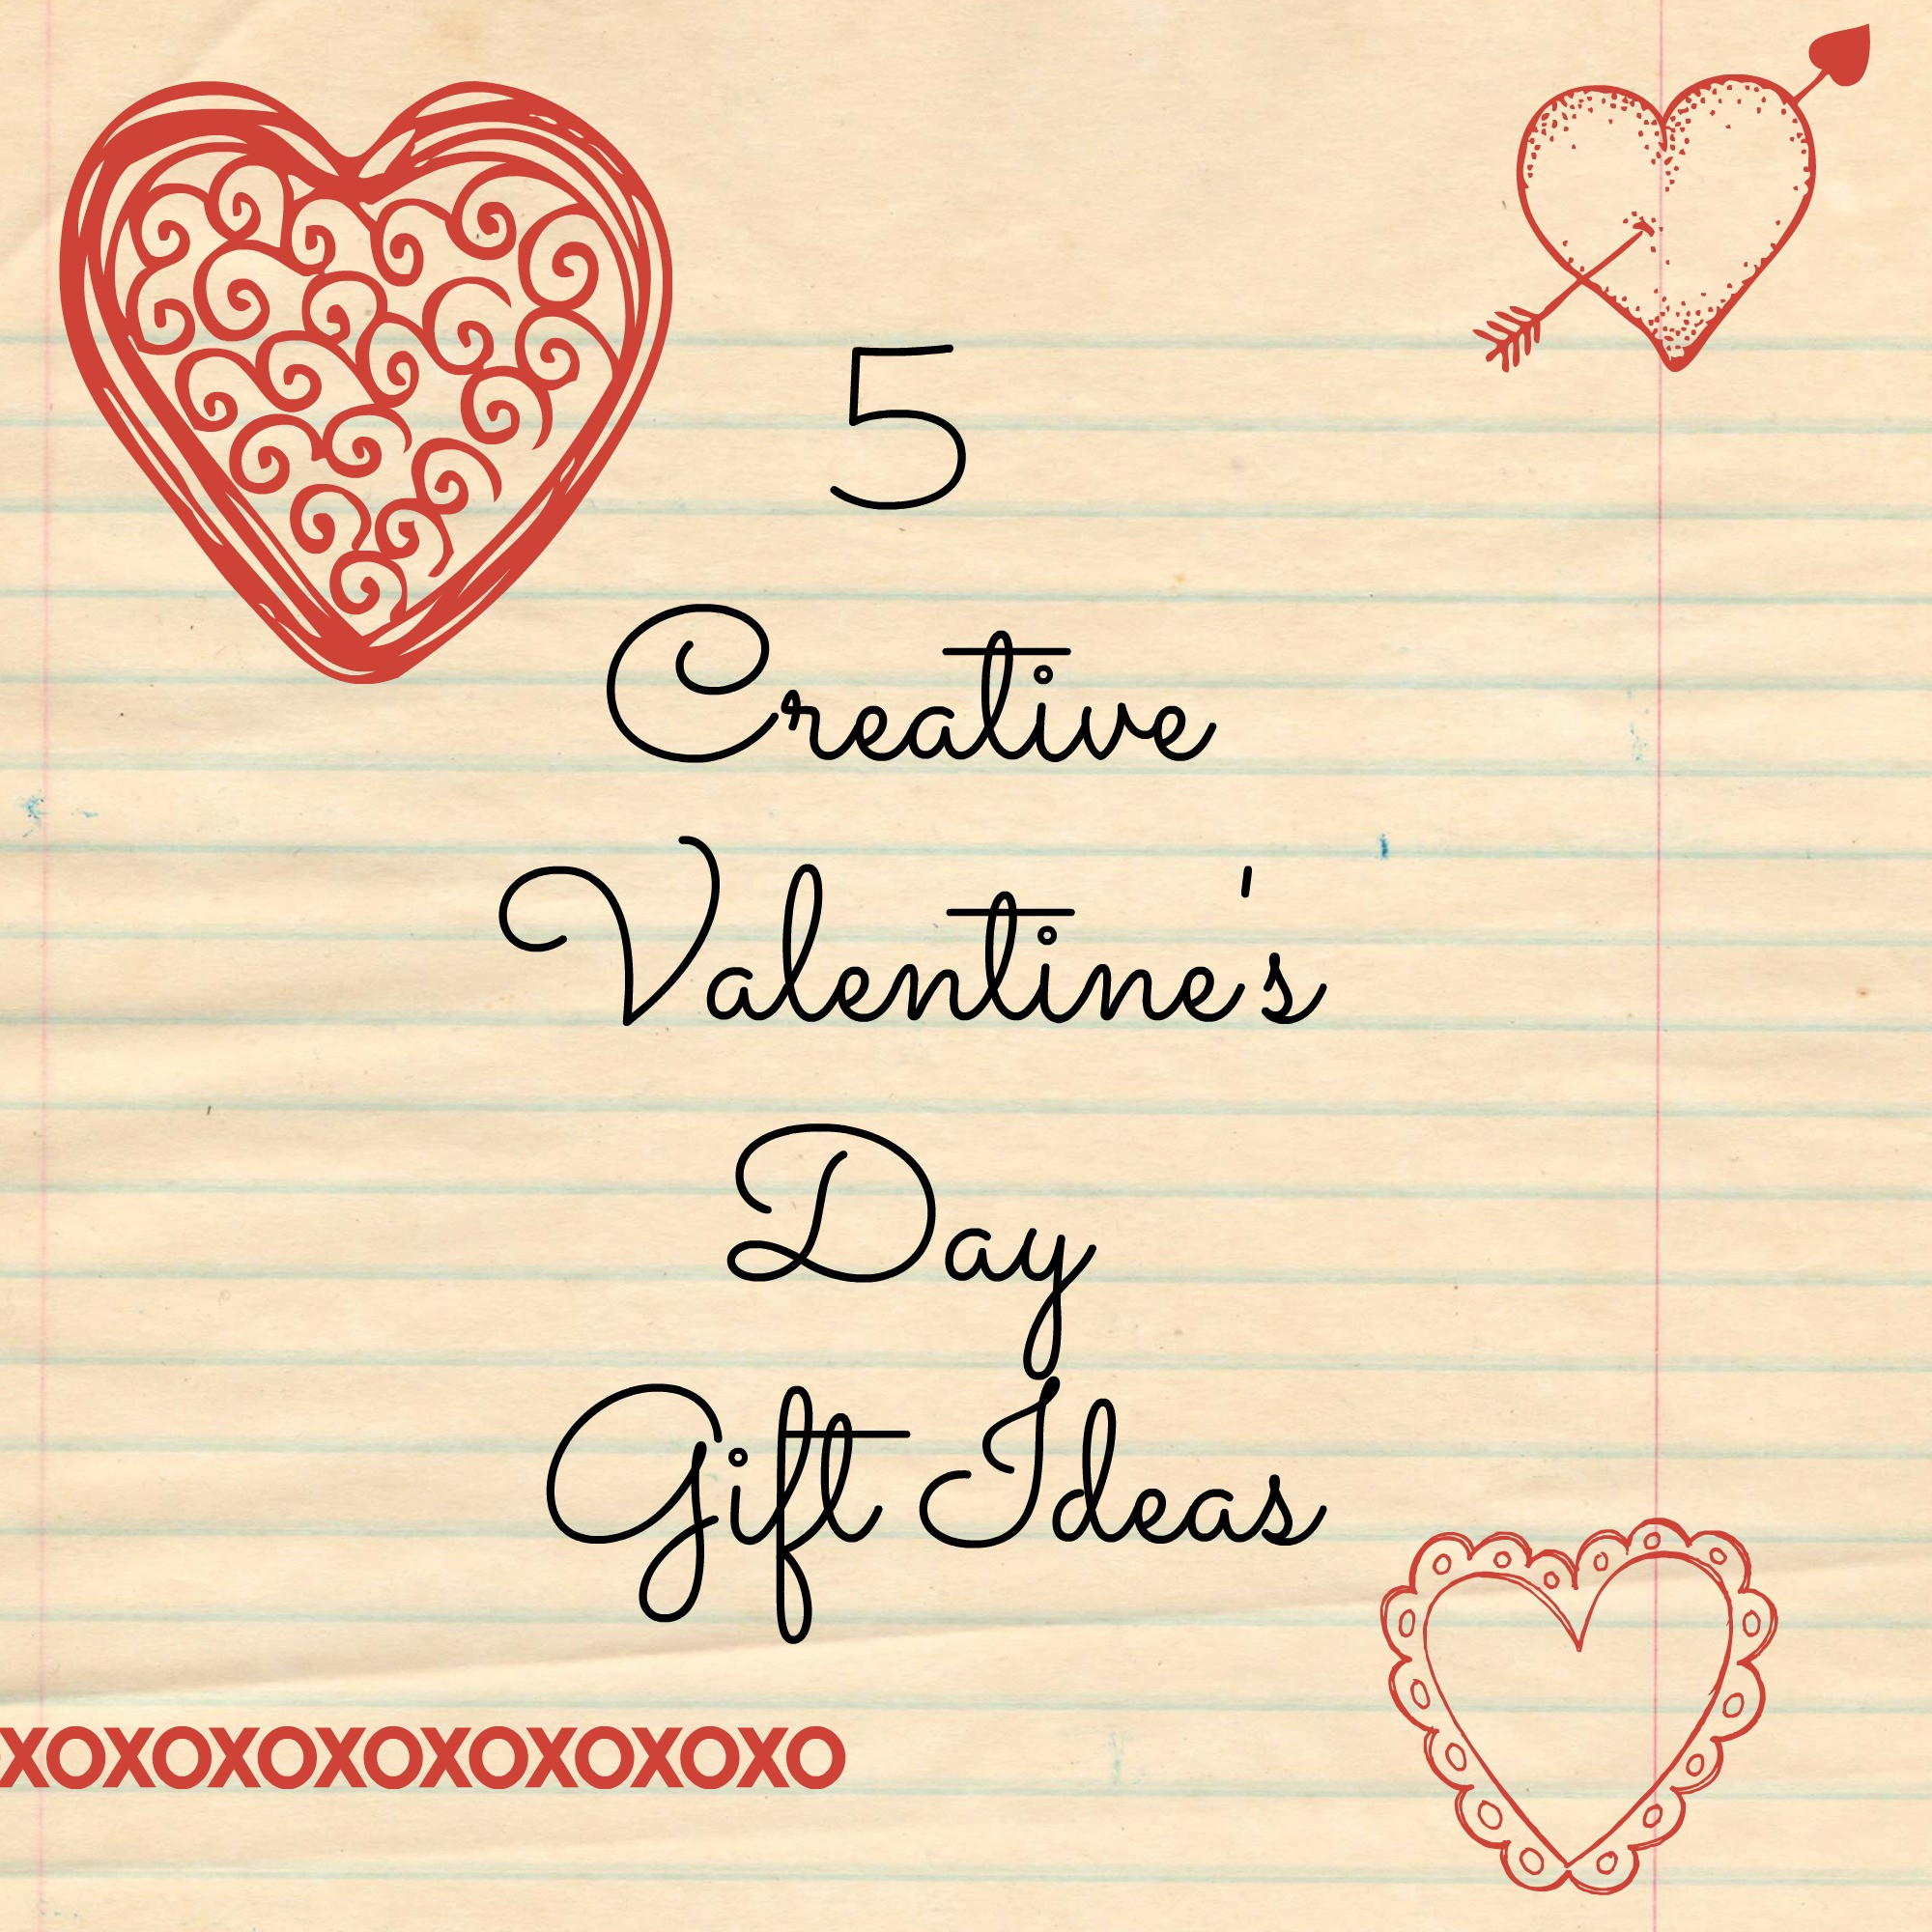 Valentines Gift Ideas For Husband  5 Creative Valentine's Day Gift Ideas